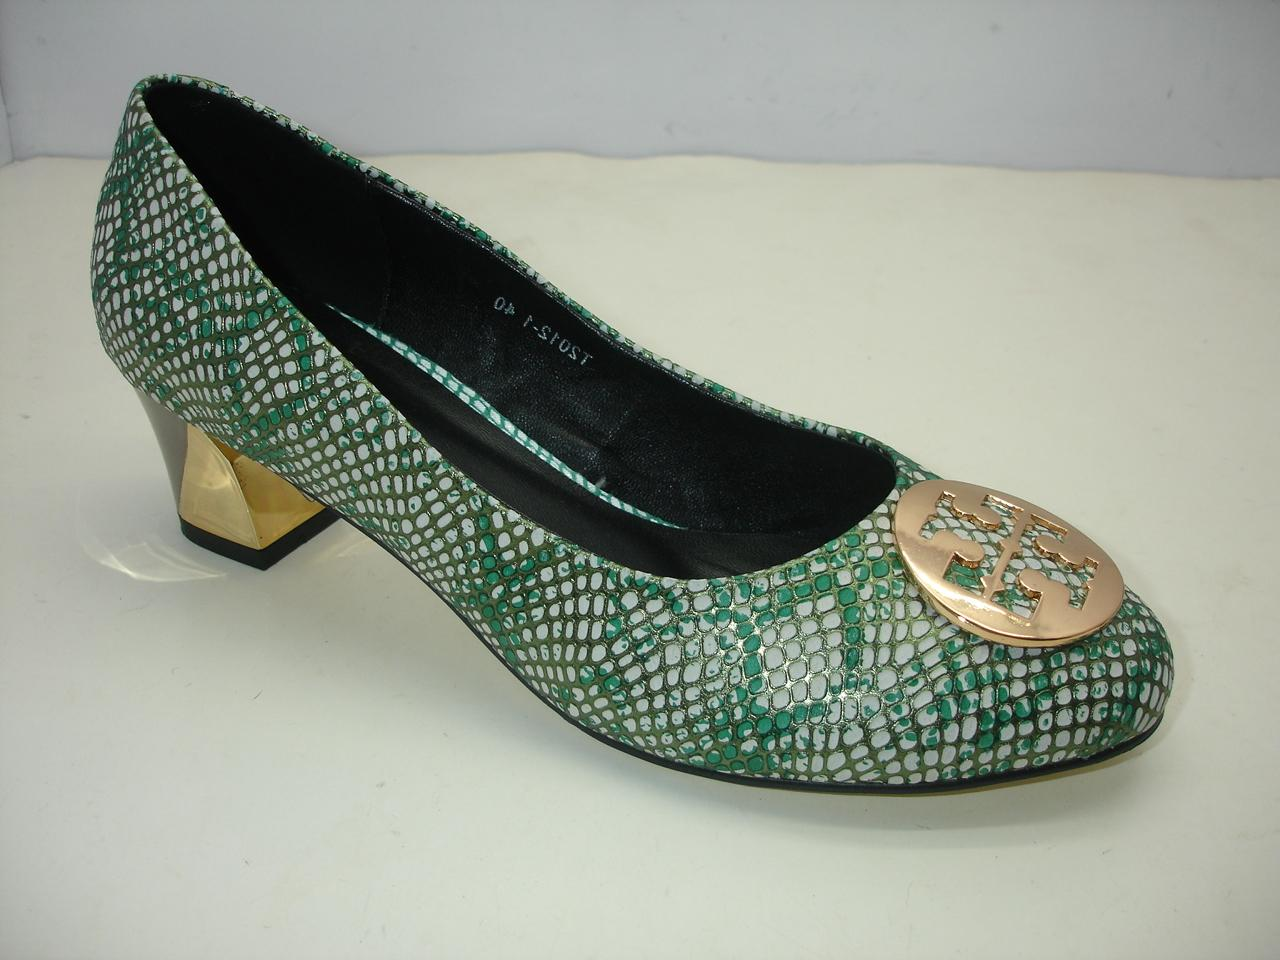 Tory Burch Heel Shoes Green